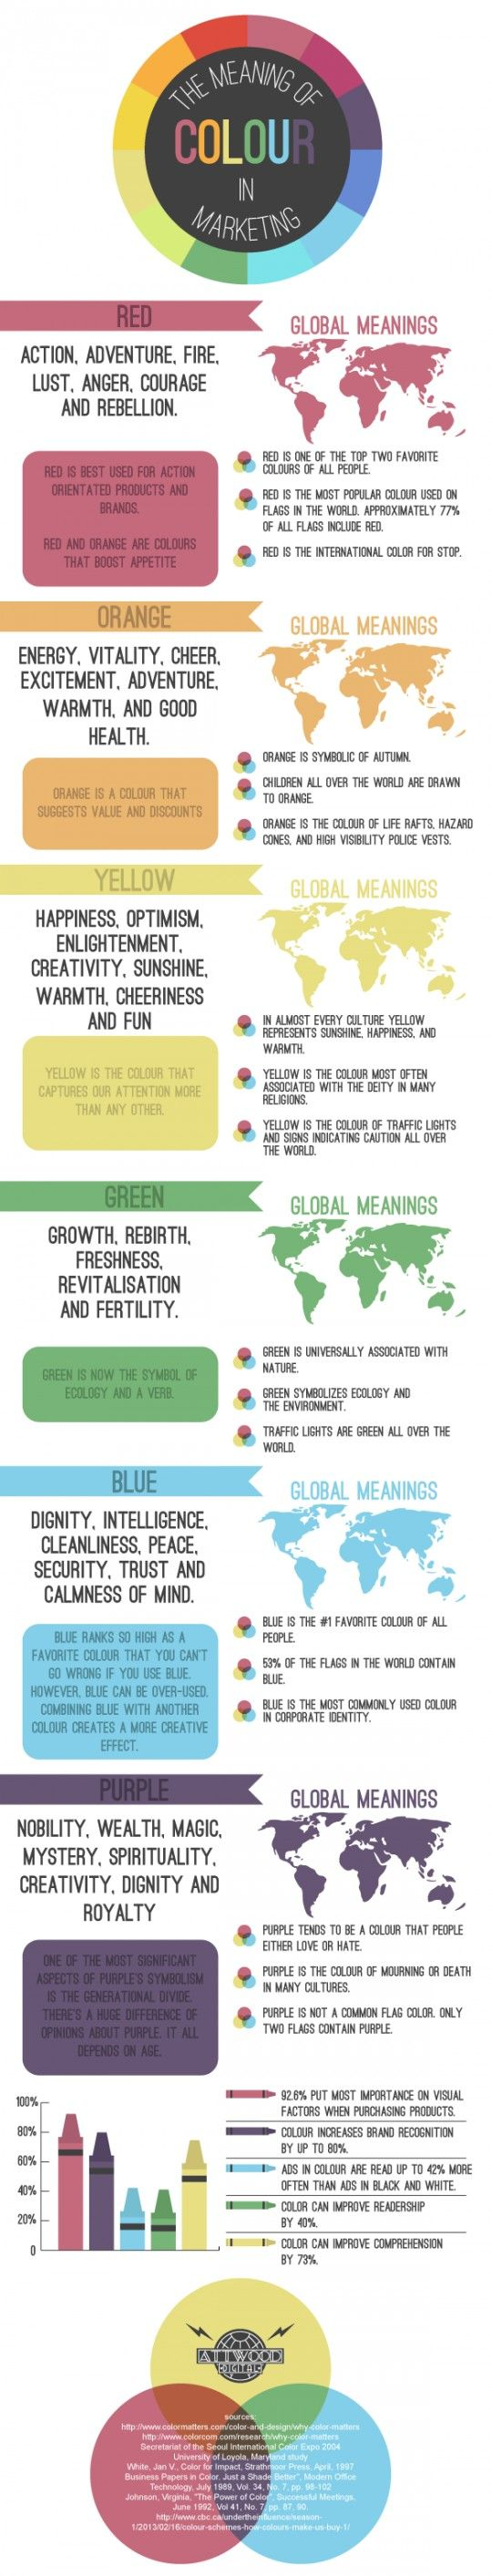 Interesting Infographic from Tailwind: The Meaning of Color in Marketing -- http://blog.tailwindapp.com/the-meaning-of-color-in-marketing/